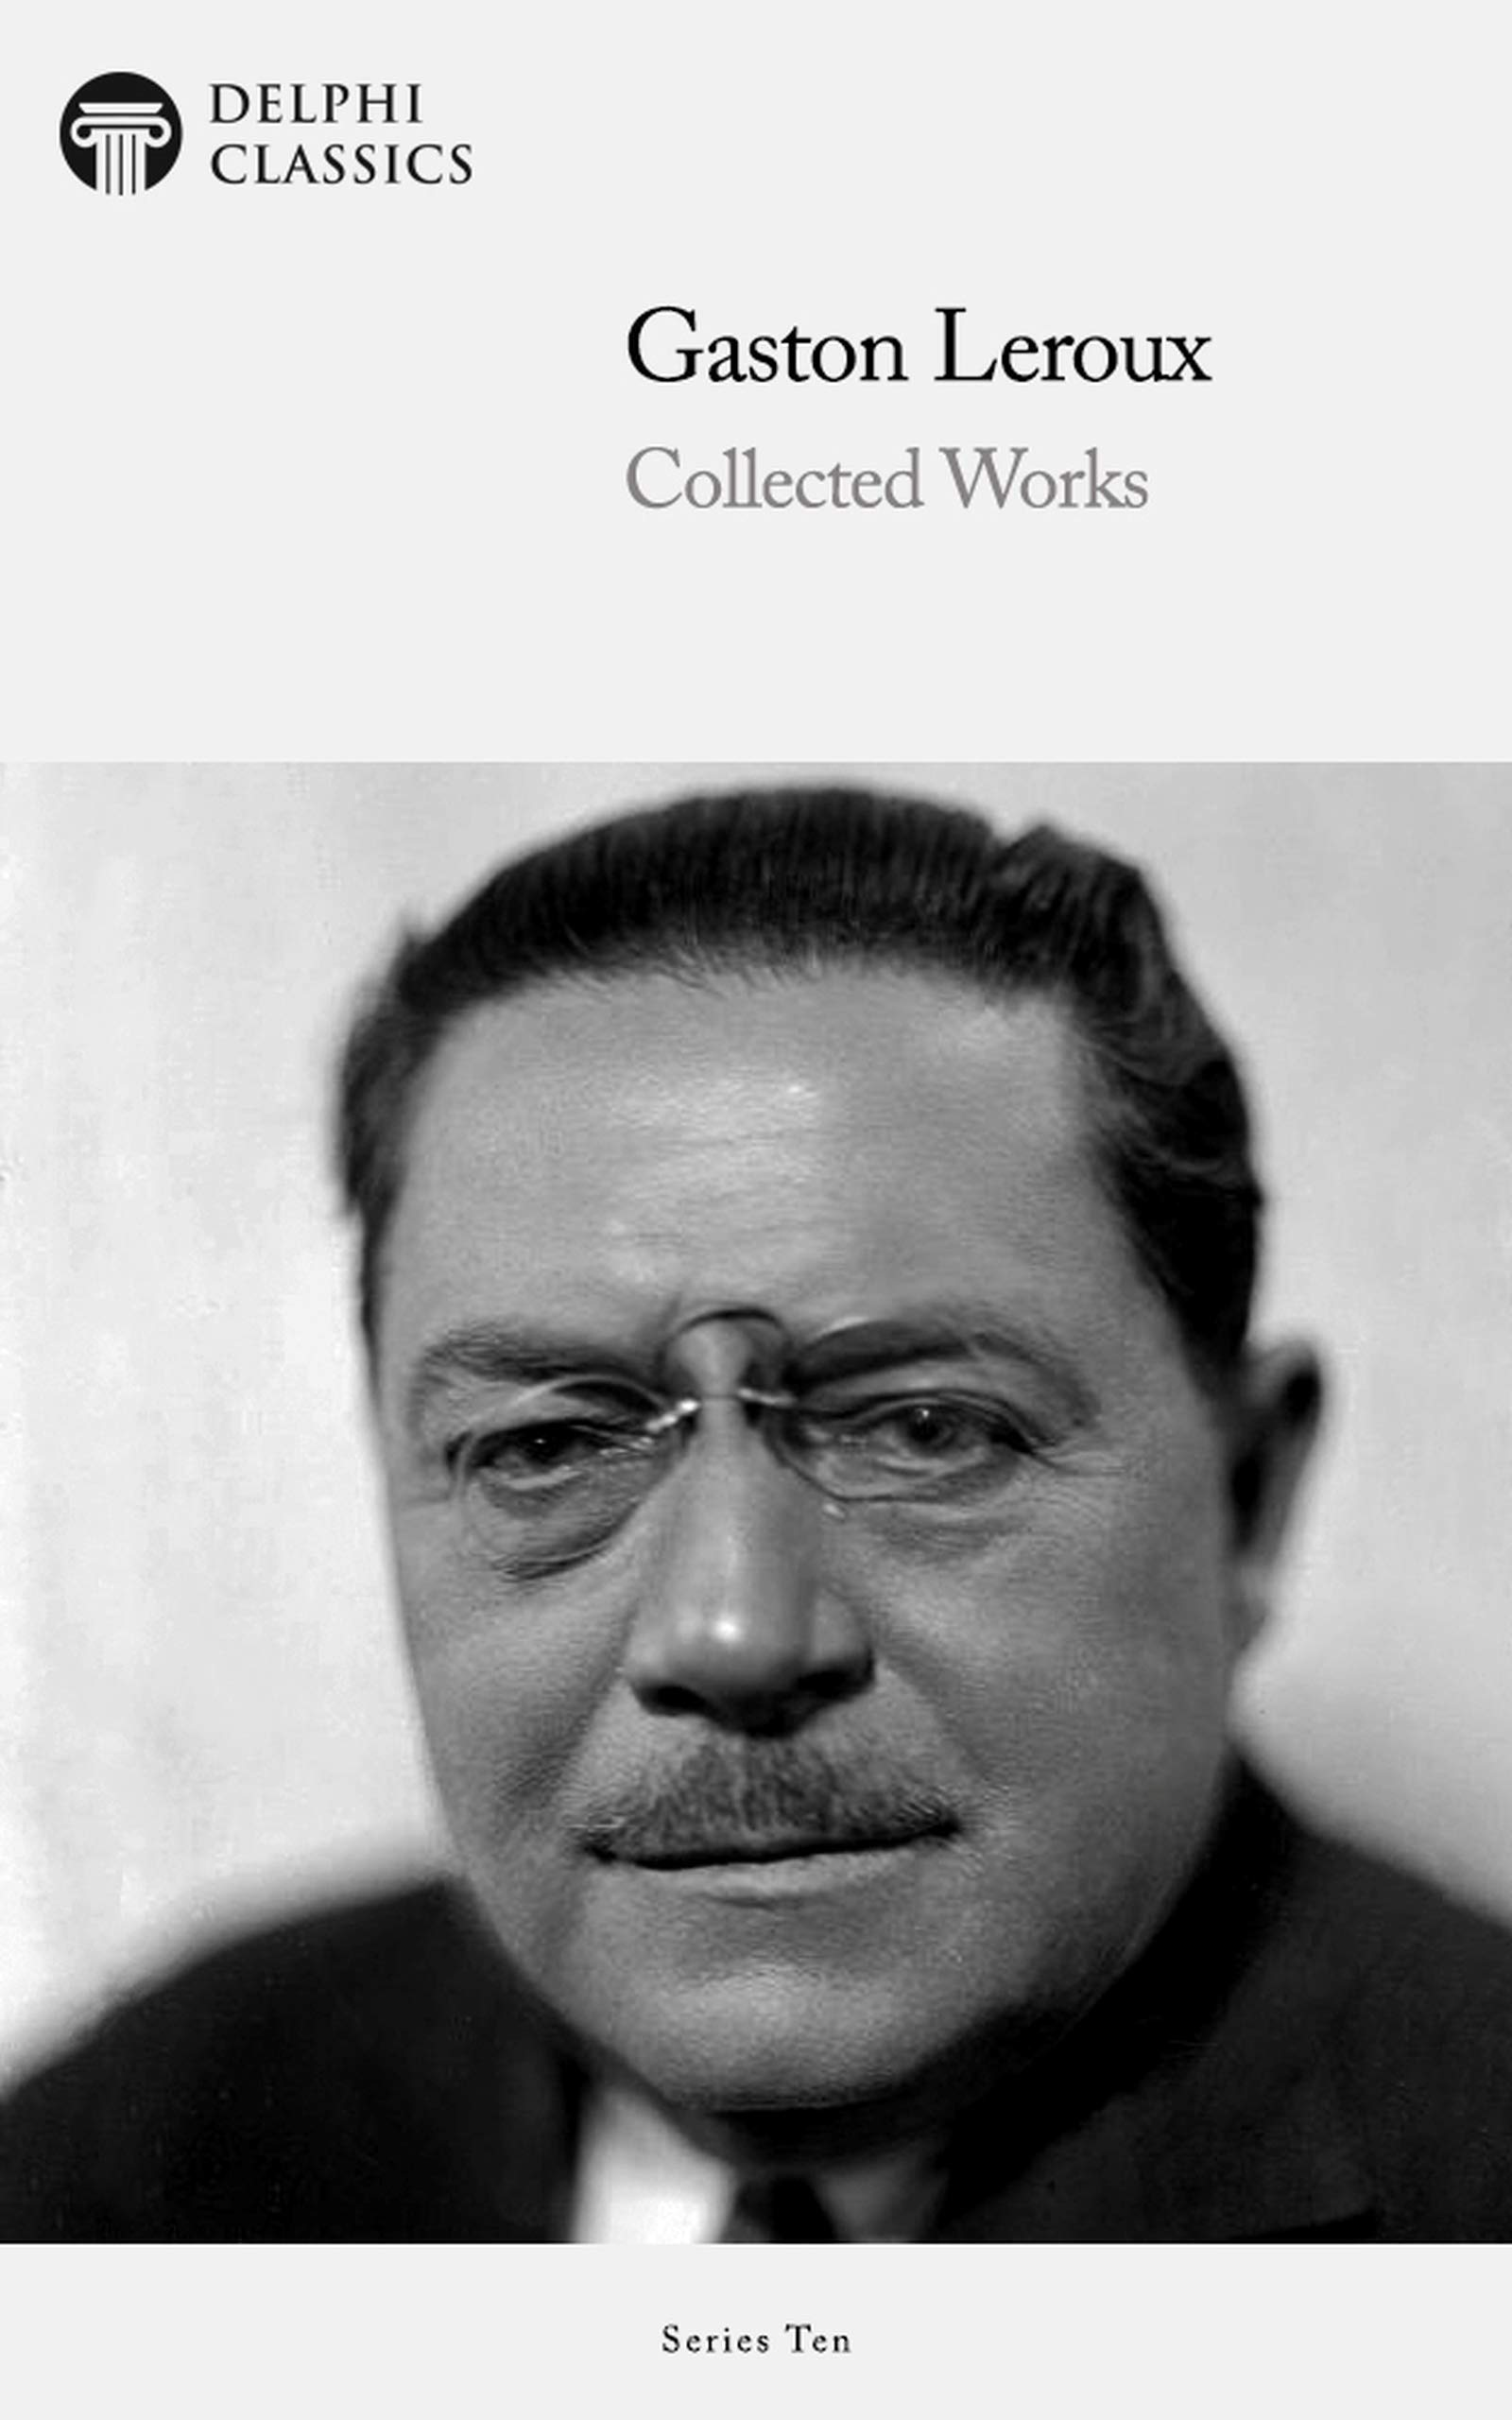 Delphi Collected Works of Gaston Leroux (Illustrated) (Delphi Series Ten Book 26)